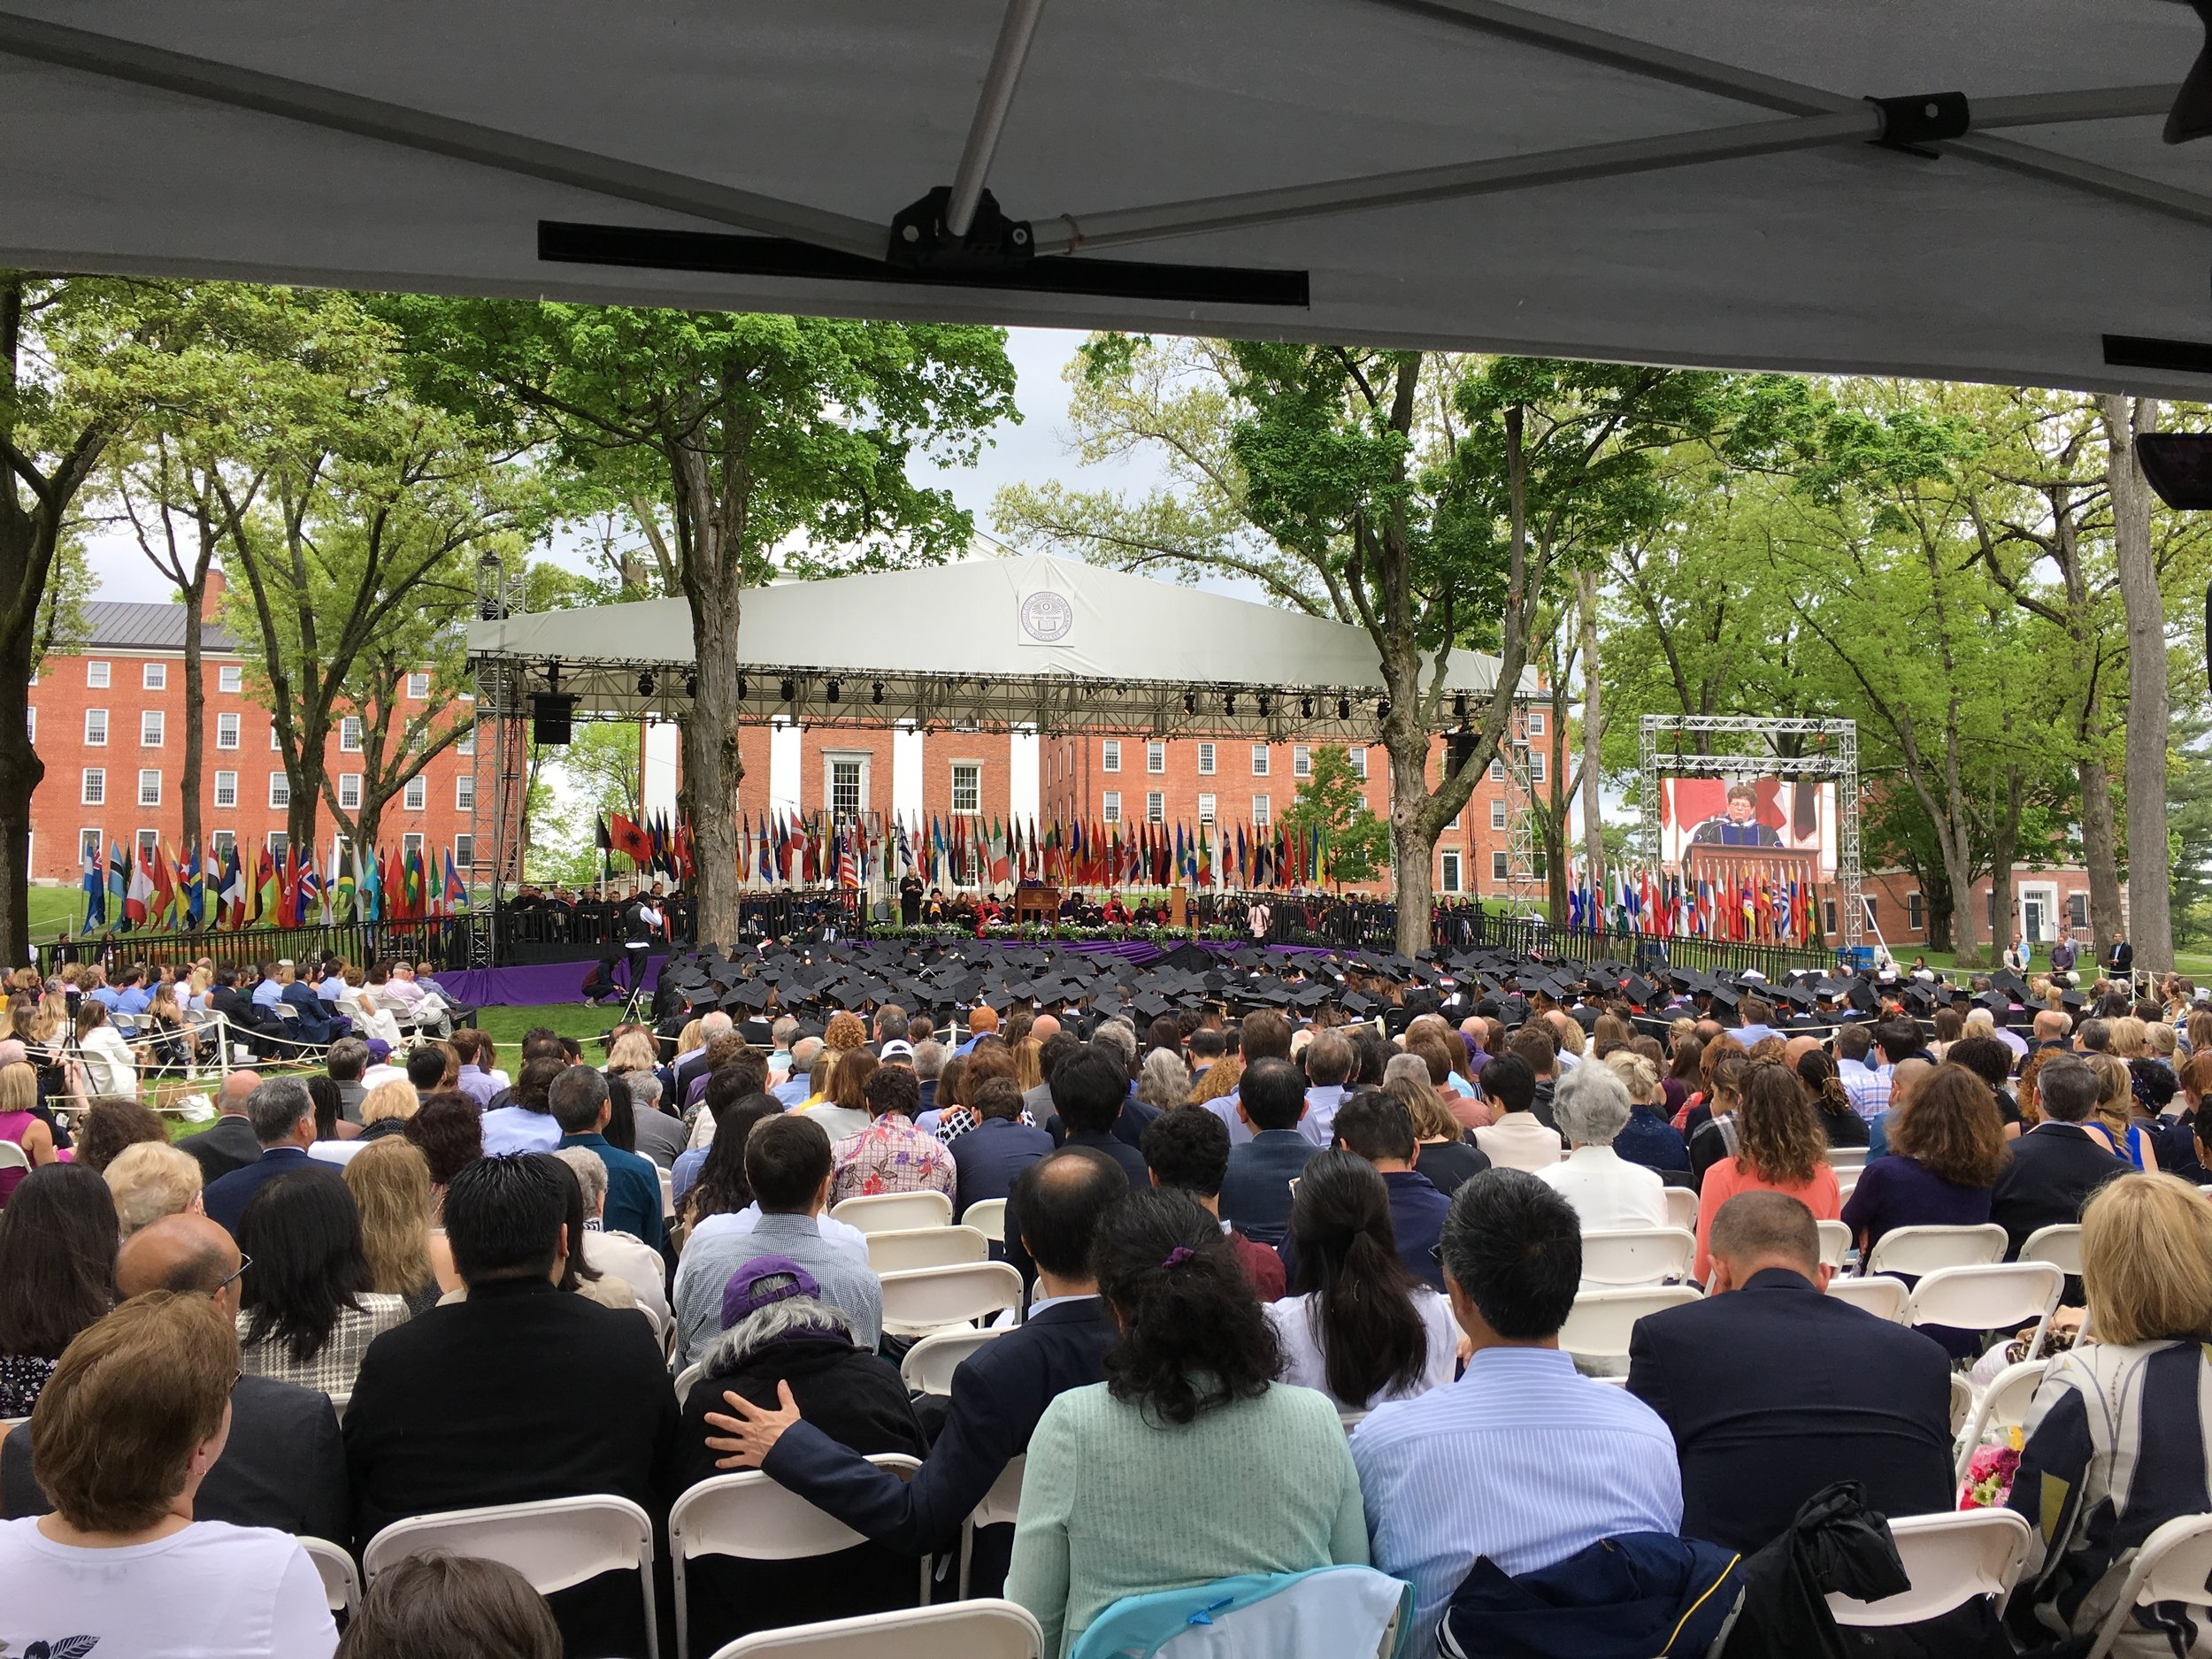 Flown L'acoustic dV-dosc at the Amherst College Commencement.